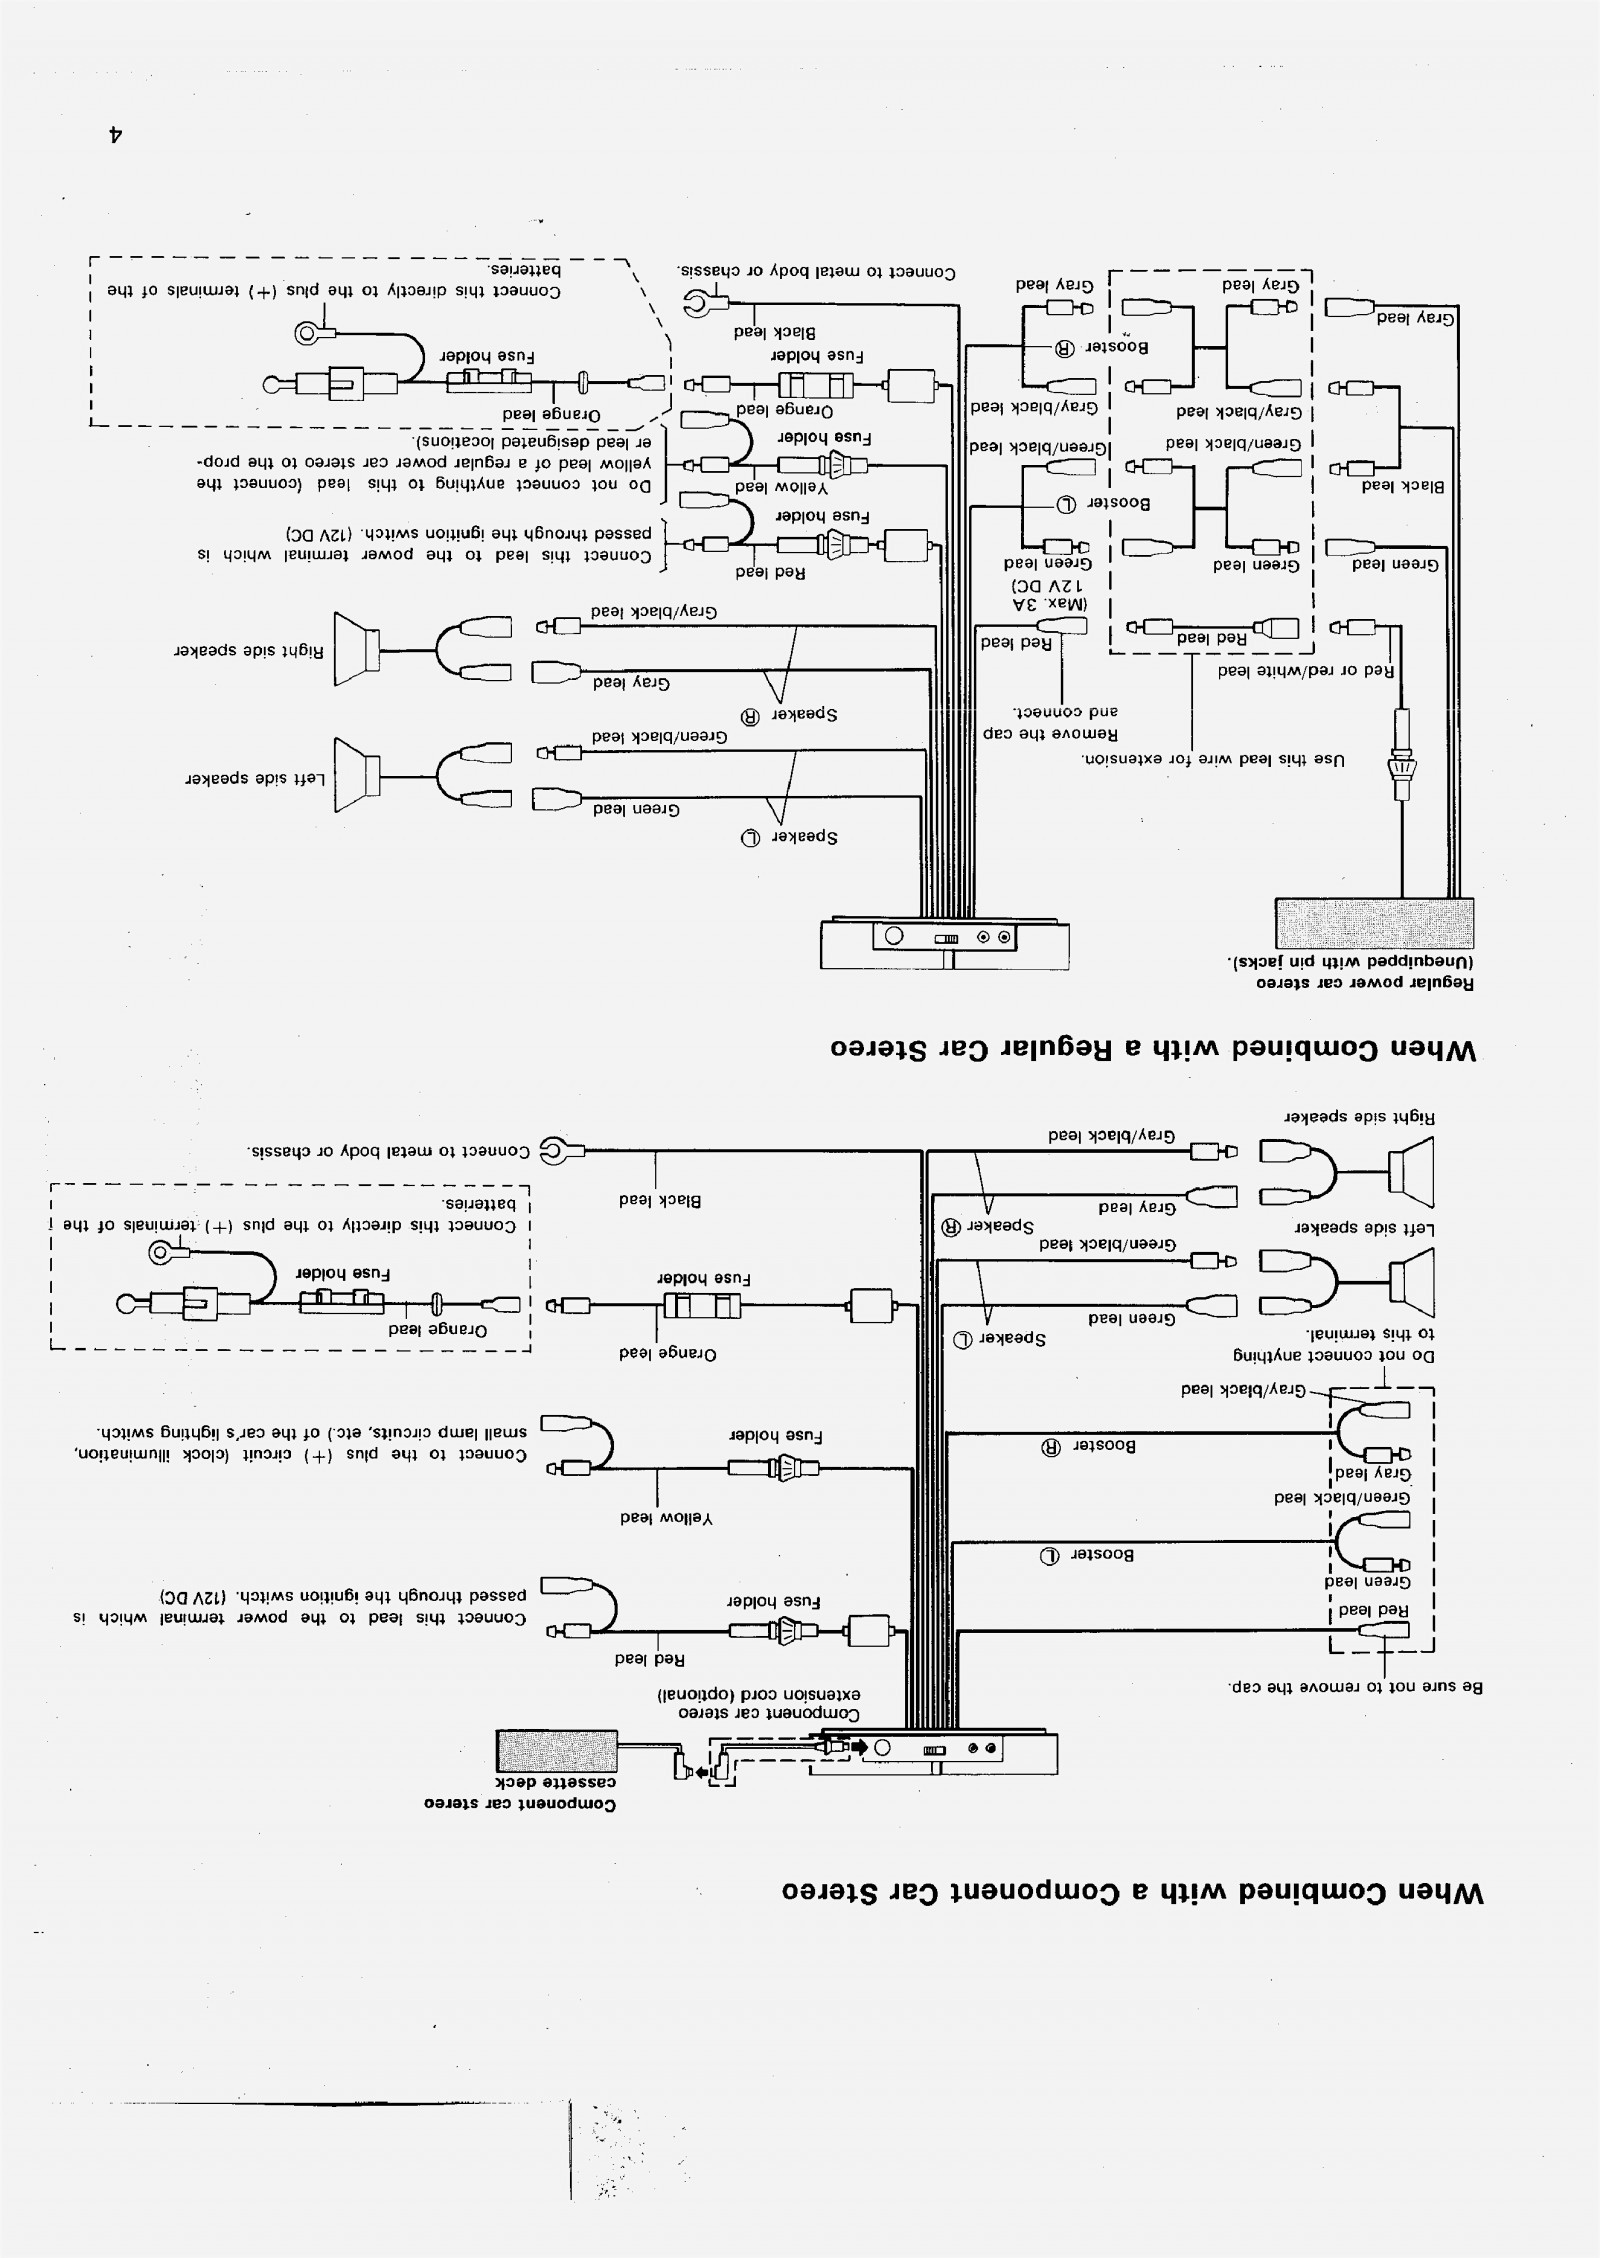 Car Stereo Wiring Harness Diagram New Car Stereo Wiring Harness Diagram – Wire Diagram Car